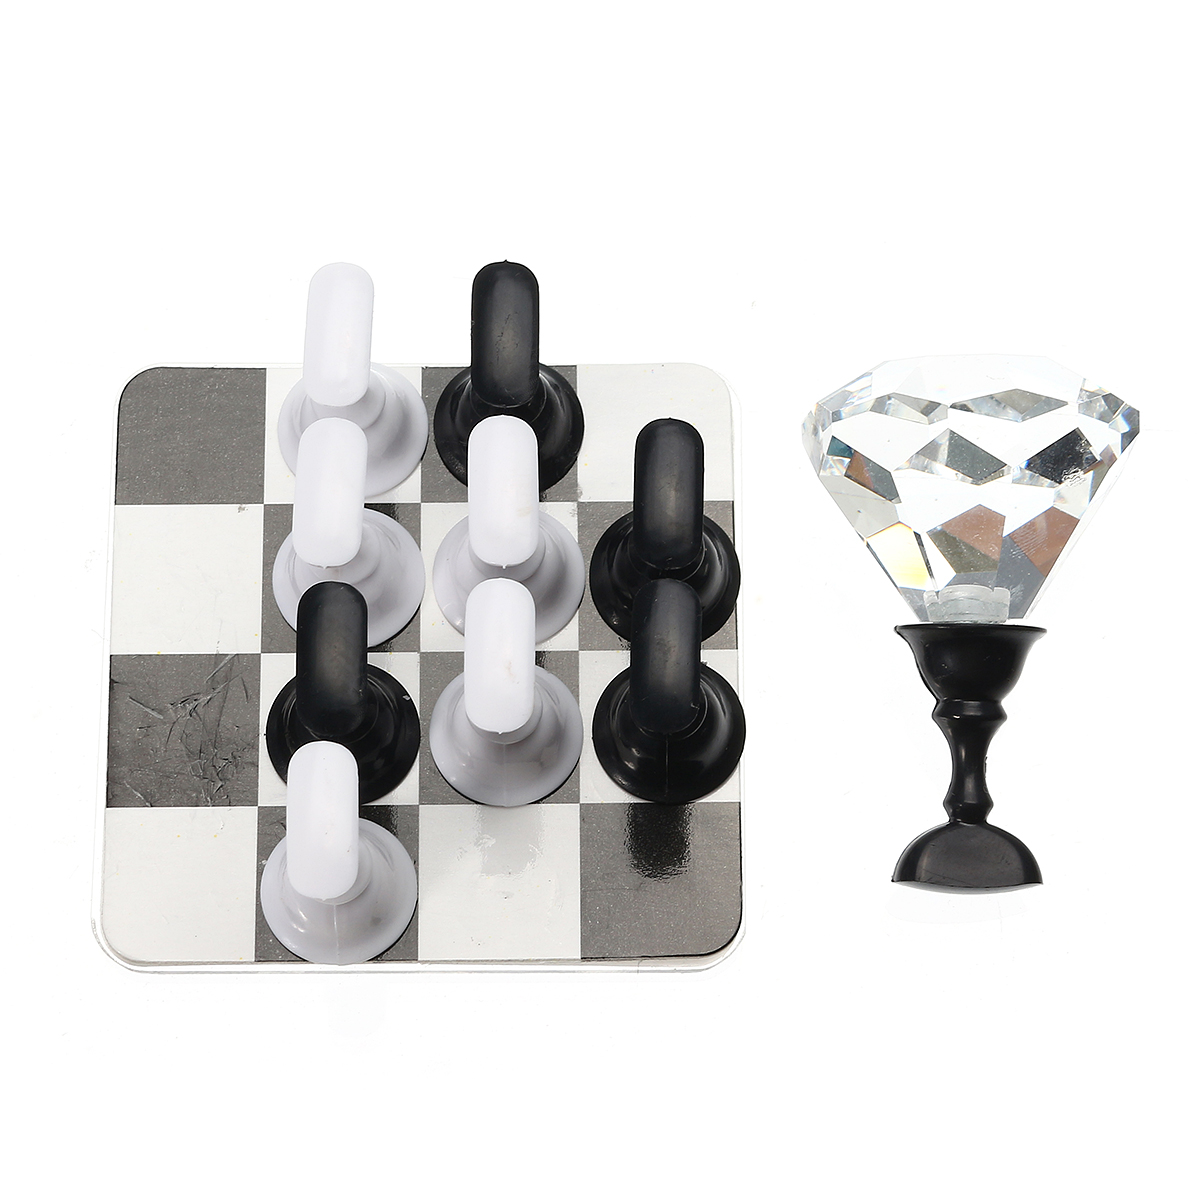 Chess Design Nail Tips Holder Display Practice Manicure Salon Tool Black White Magnetic Base